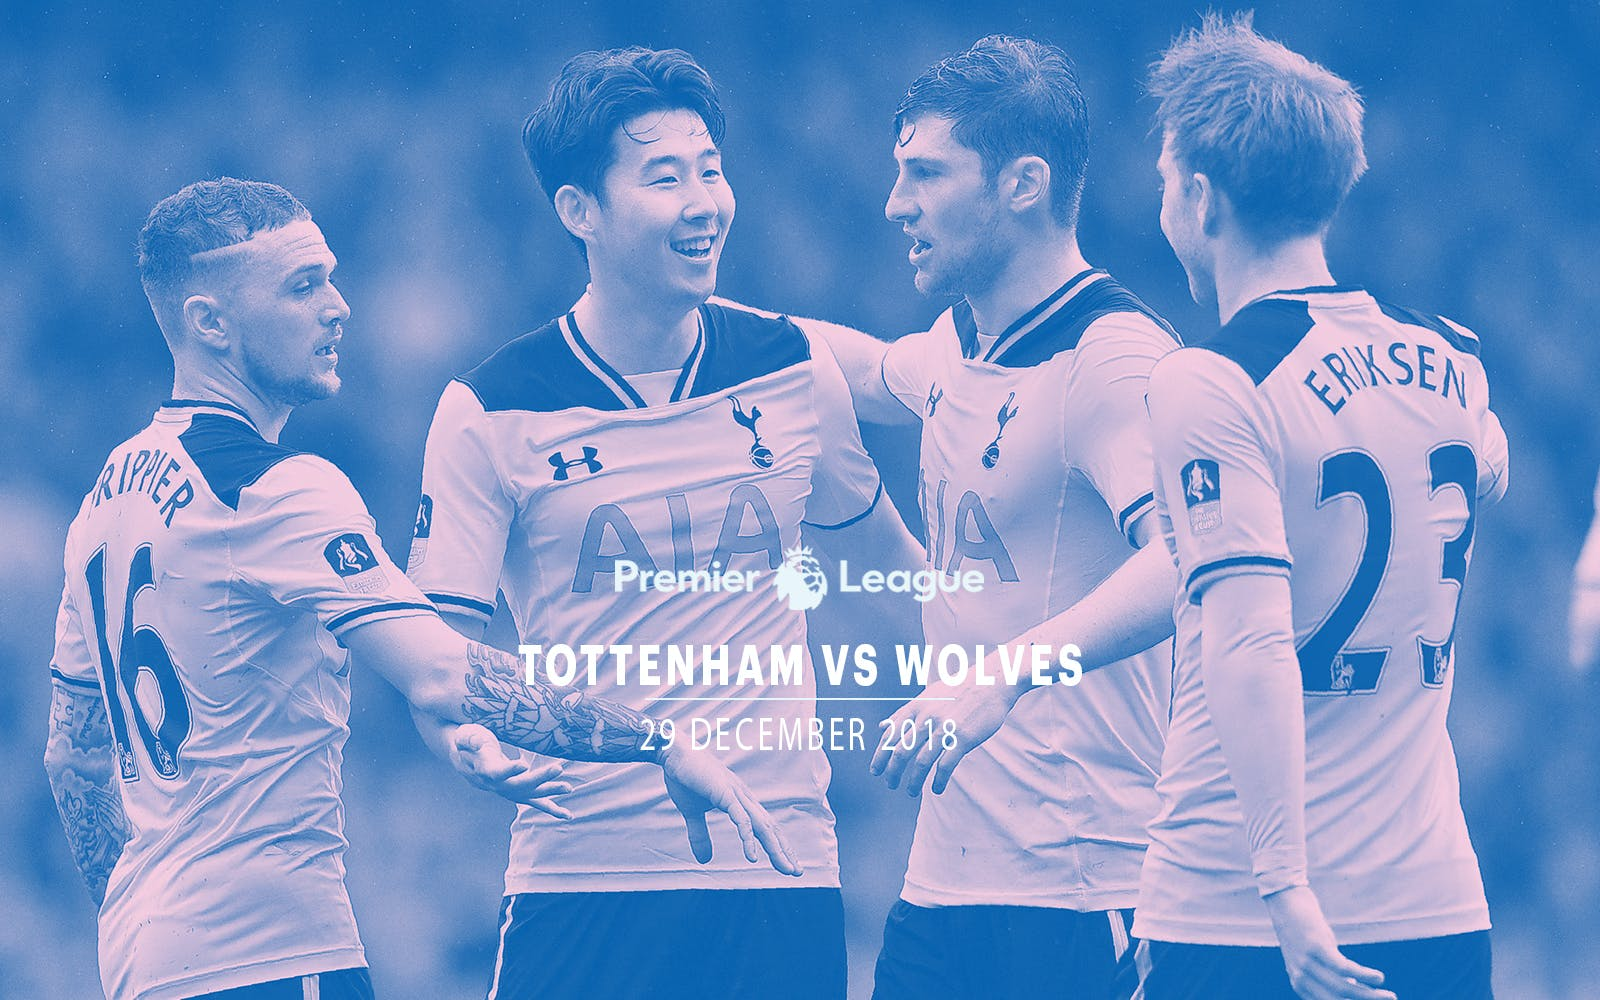 Tottenham vs Wolves